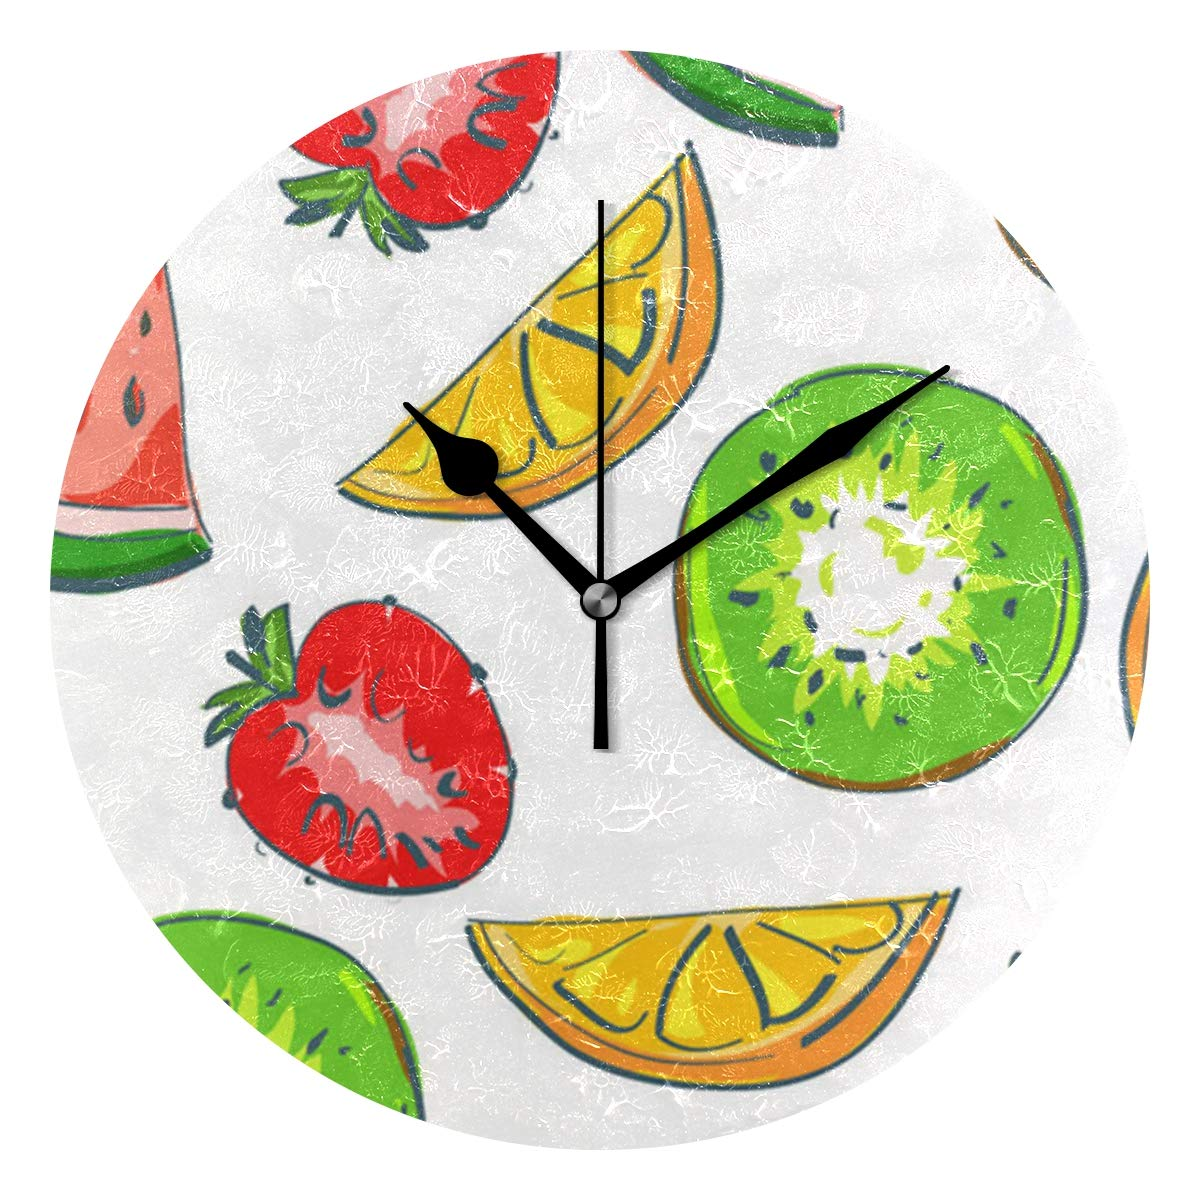 Ladninag Wall Clock Fruits Everyday Silent Non Ticking Decorative Round Digital Clocks Indoor Outdoor Kitchen Bedroom Living Room